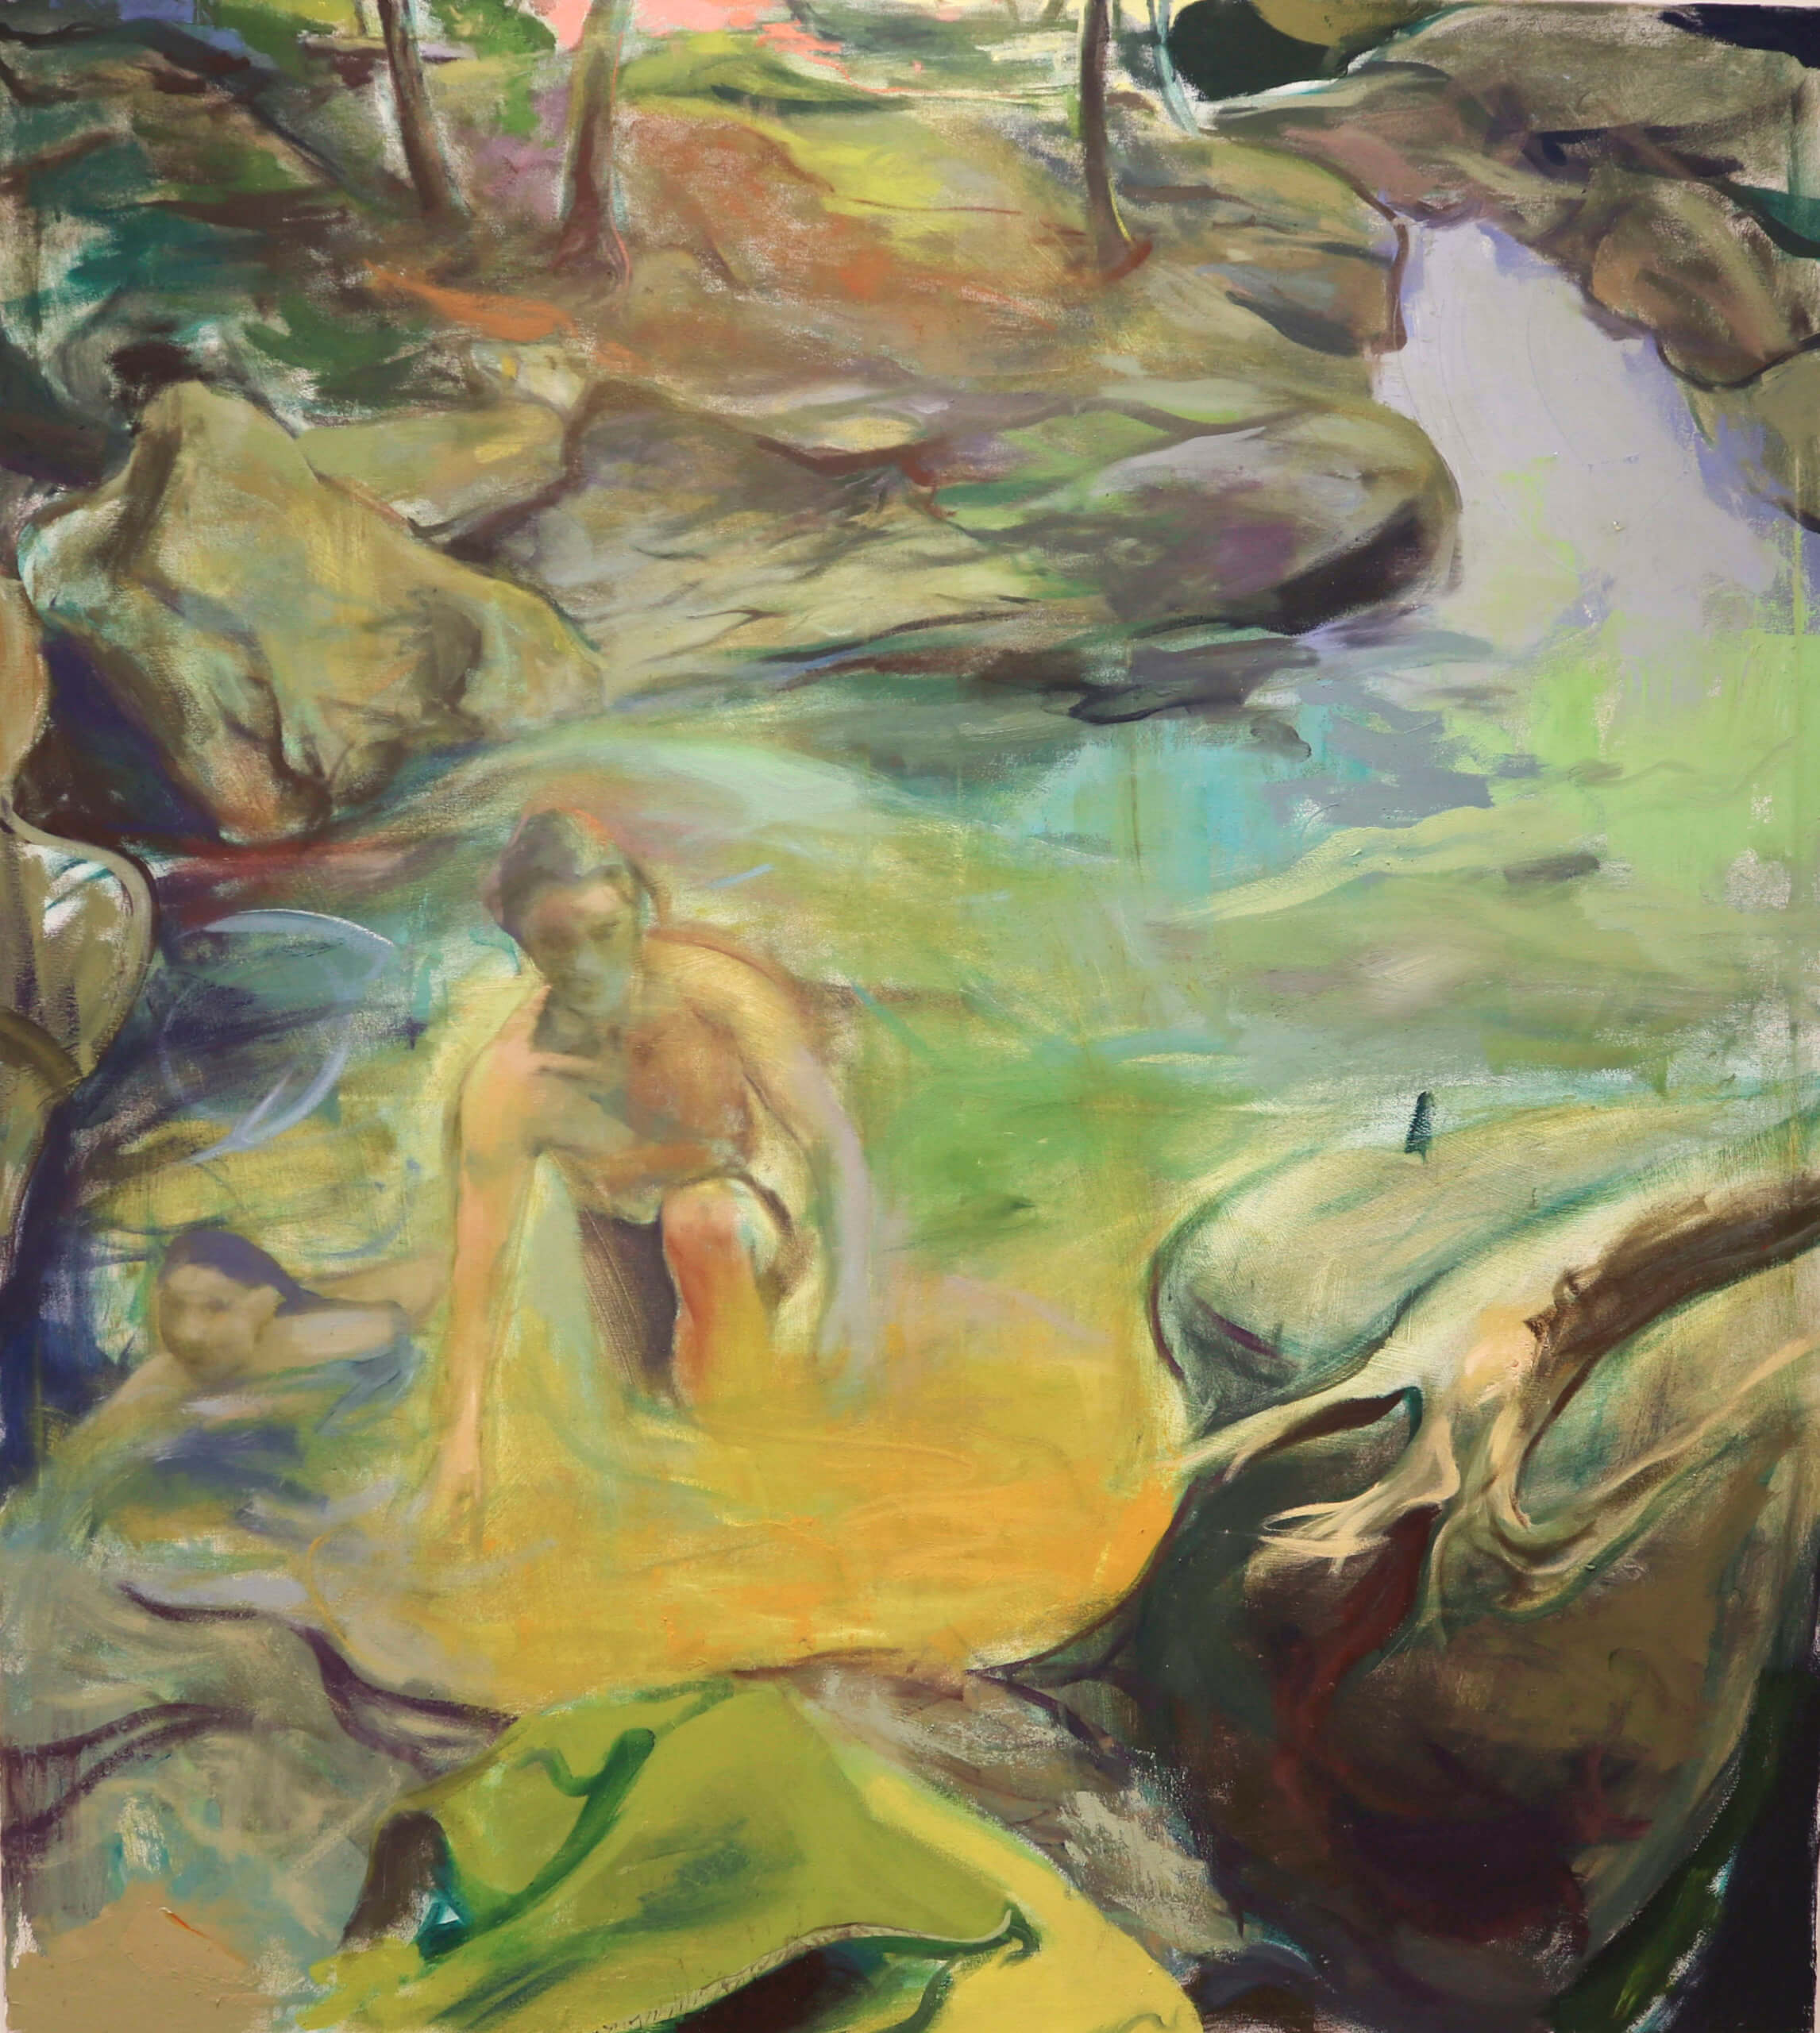 First Place: Holden Willard – The Bathers